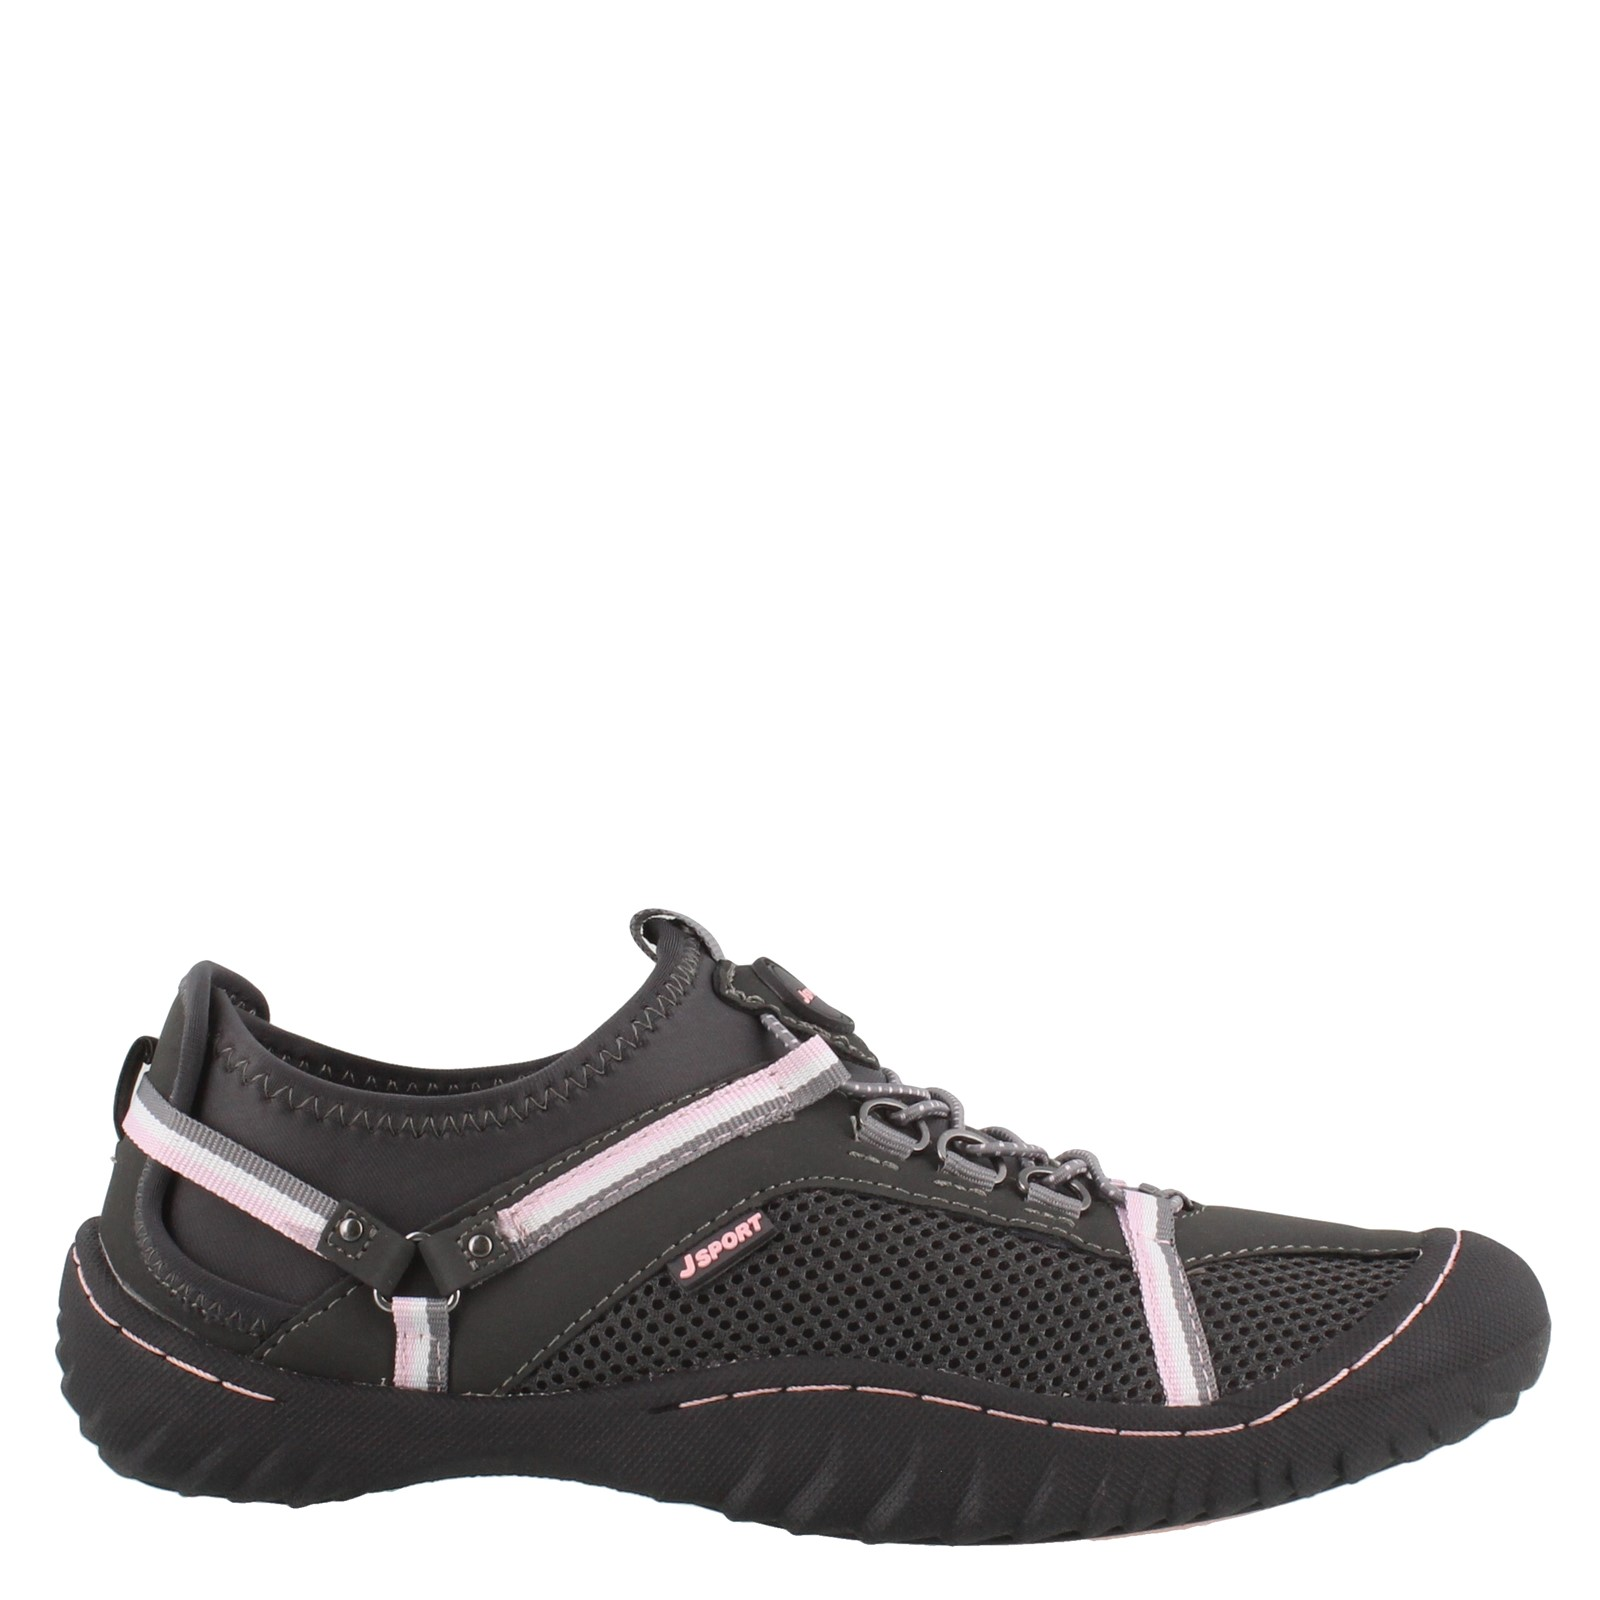 Women's JSport, Tahoe Max D-Rings